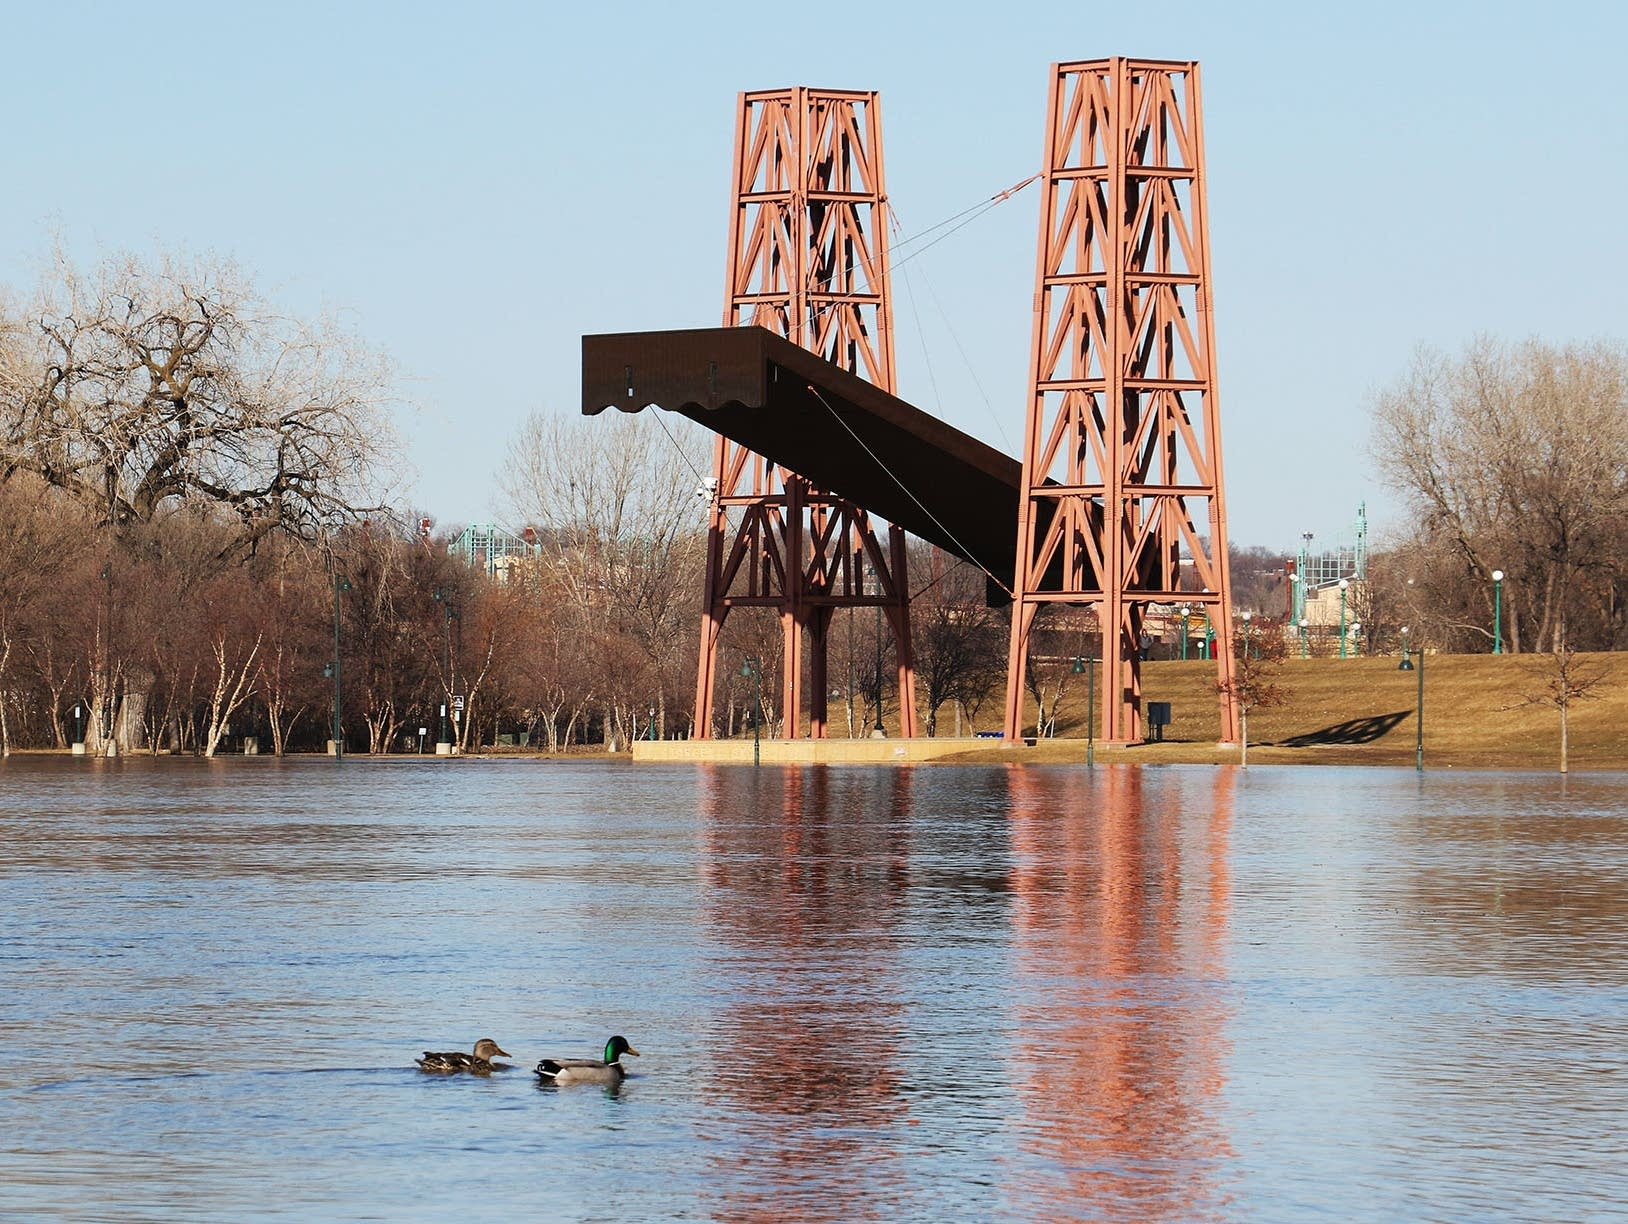 Ducks paddle on the floodwaters of the Mississippi River